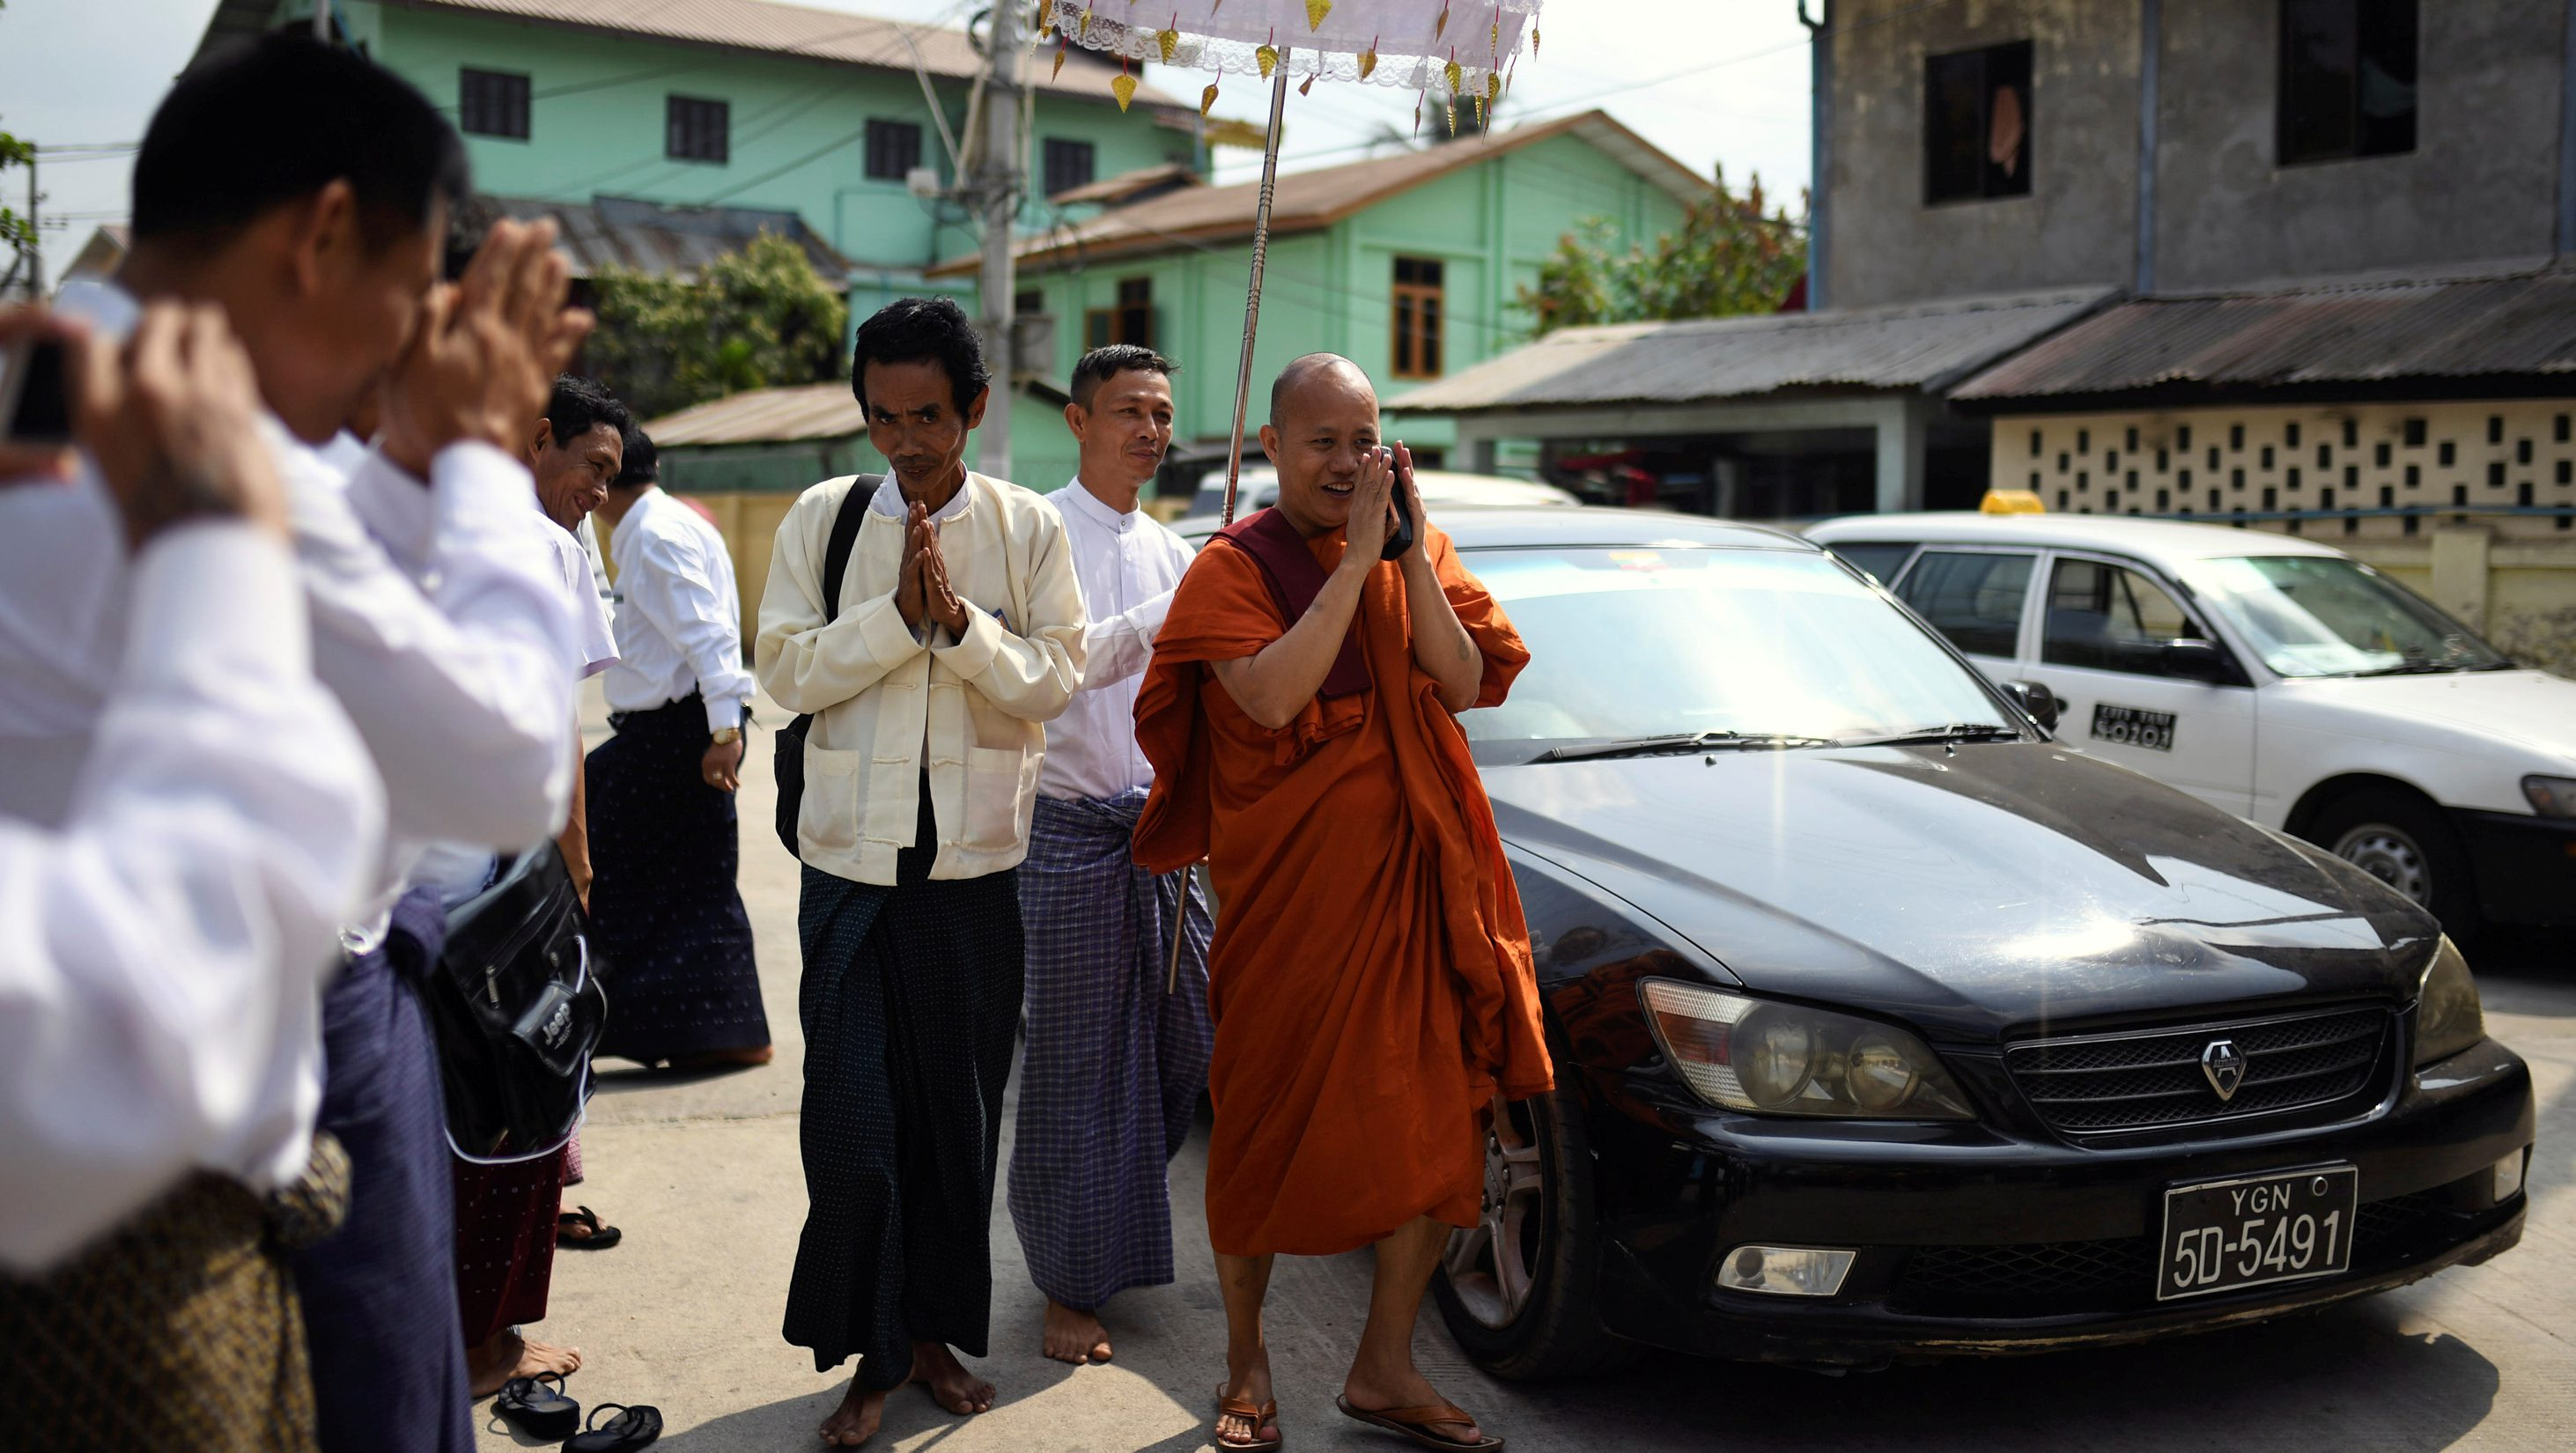 Buddhist monk Wirathu, who was banned by the Myanmar government from giving sermons for one year, arrives at a monastery to give a speech after the ban expired on March 9, in Yangon, Myanmar March 10, 2018. REUTERS/Stringer NO RESALES NO ARCHIVES - RC1388889C70